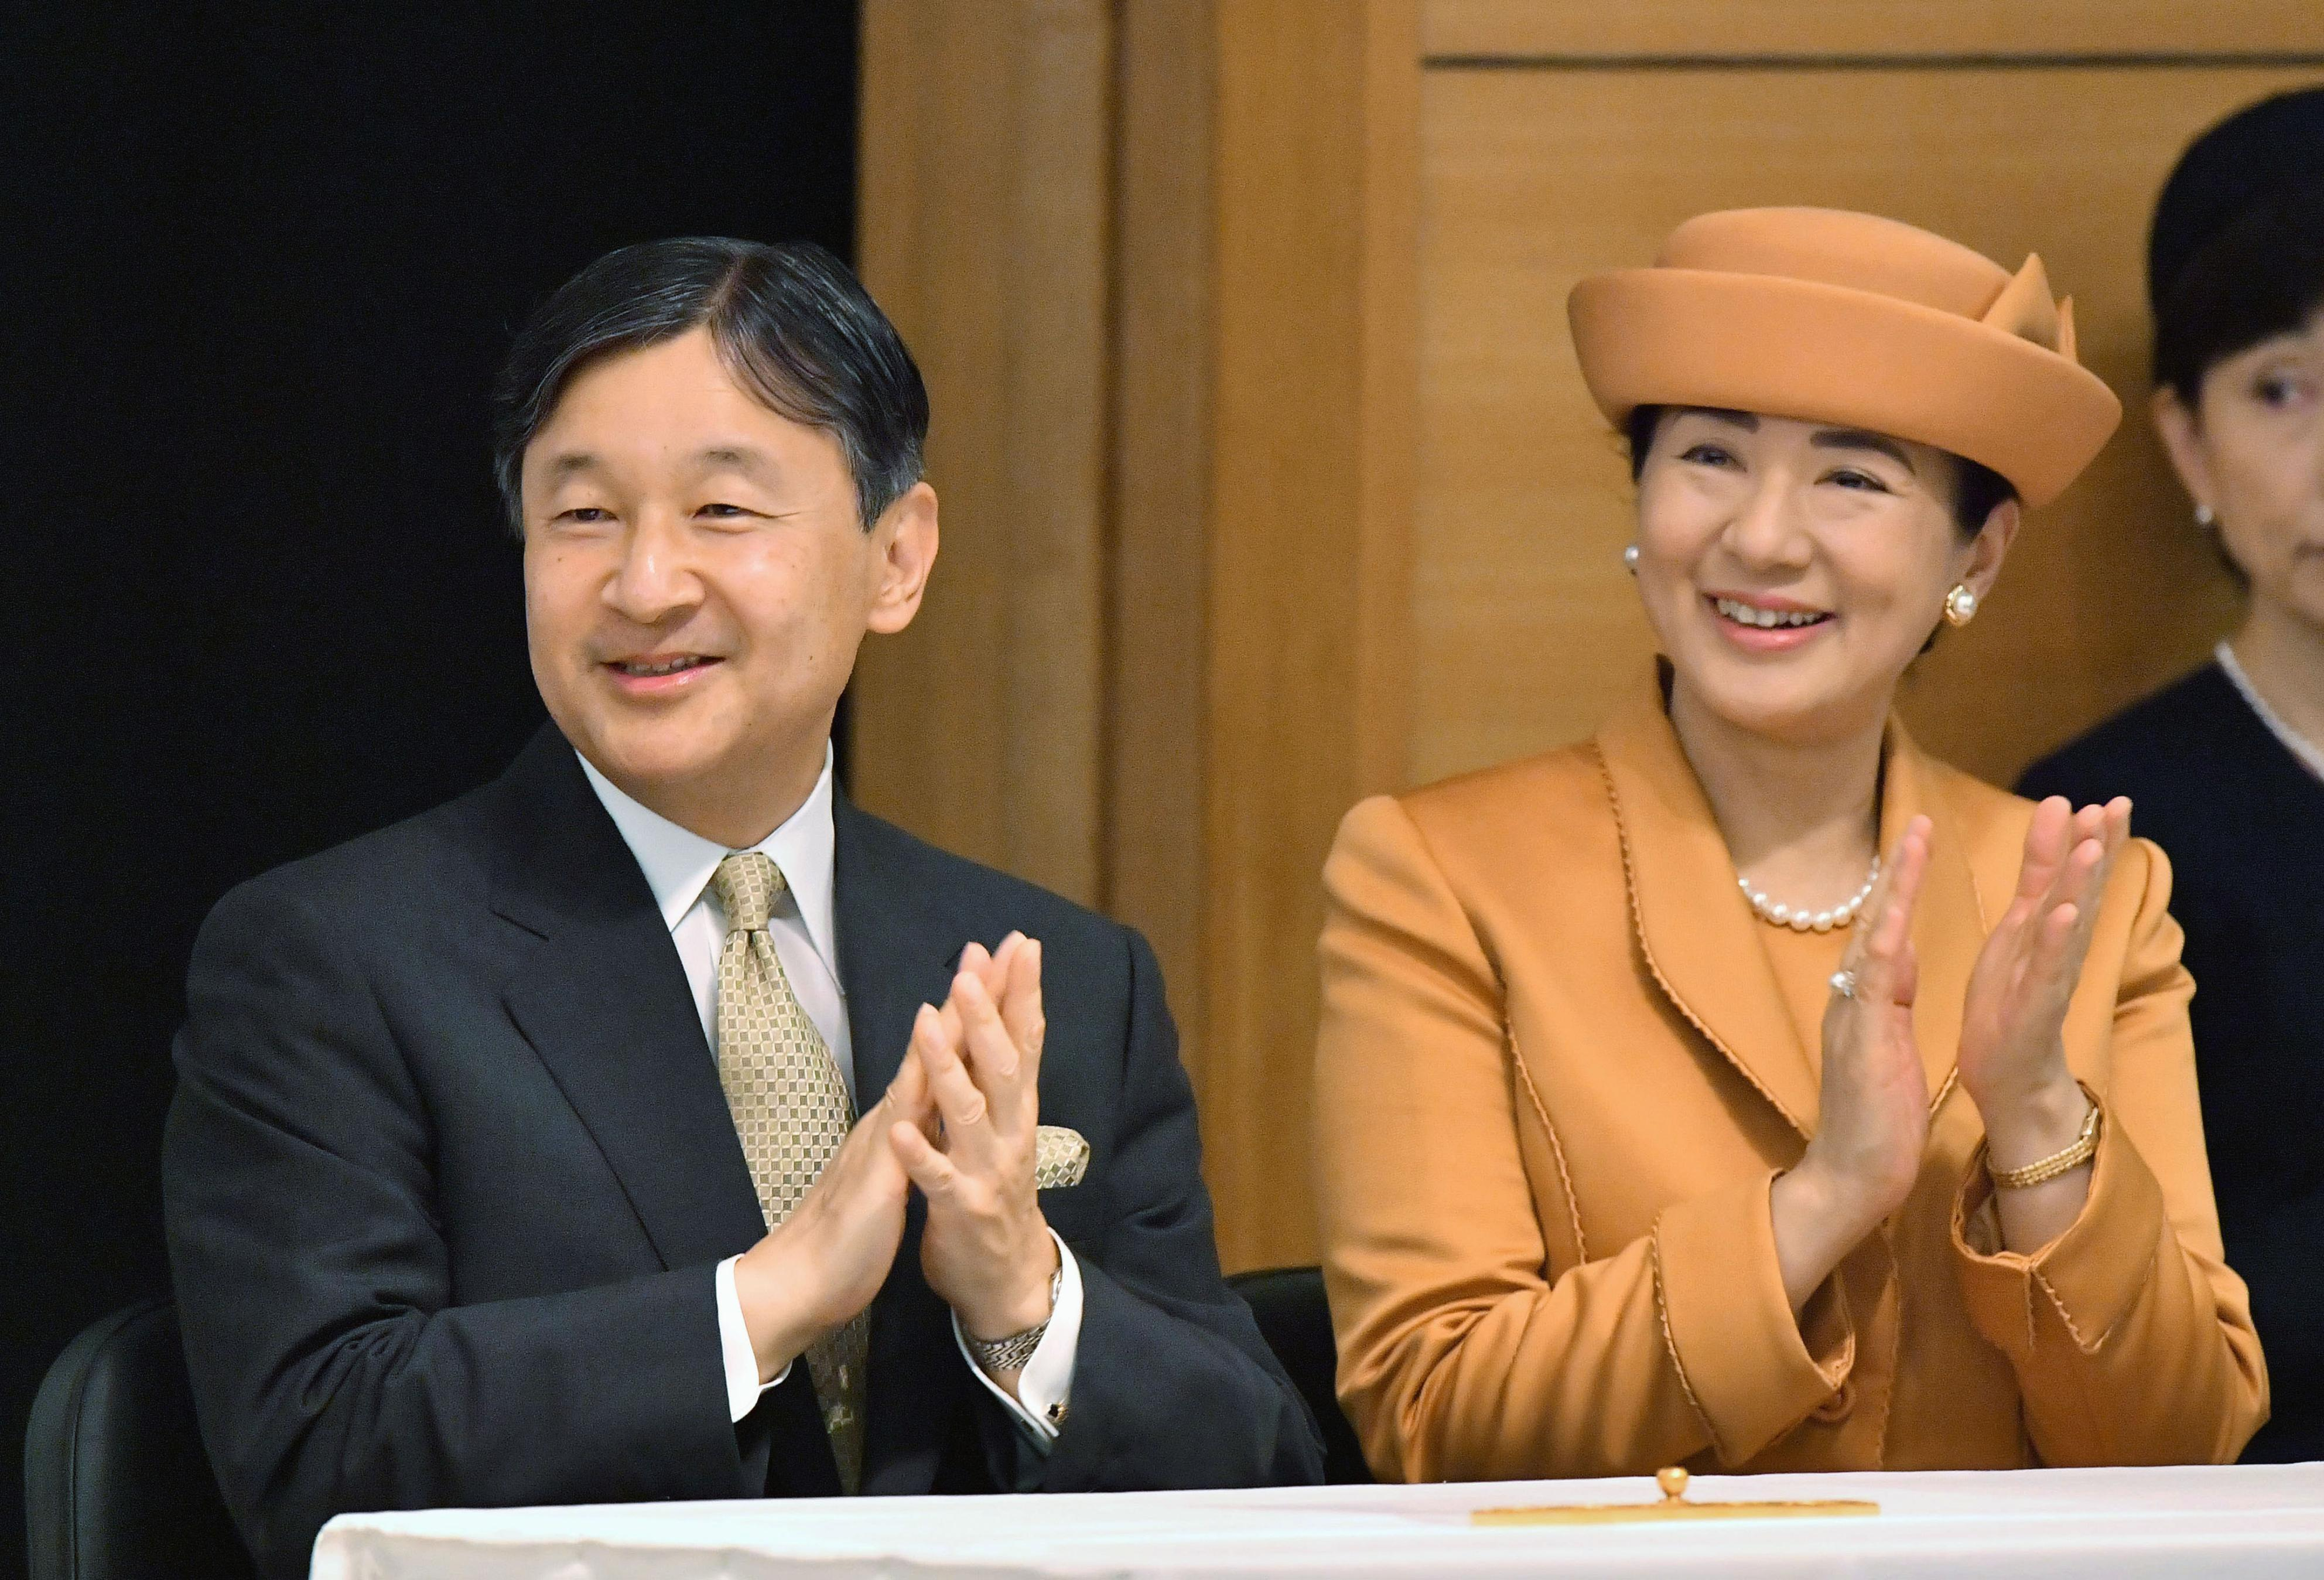 Japanese Emperor Naruhito and Empress Masako attend the 60th Convention of Nikkei and Japanese Abroad in Tokyo on Oct. 1, 2019.